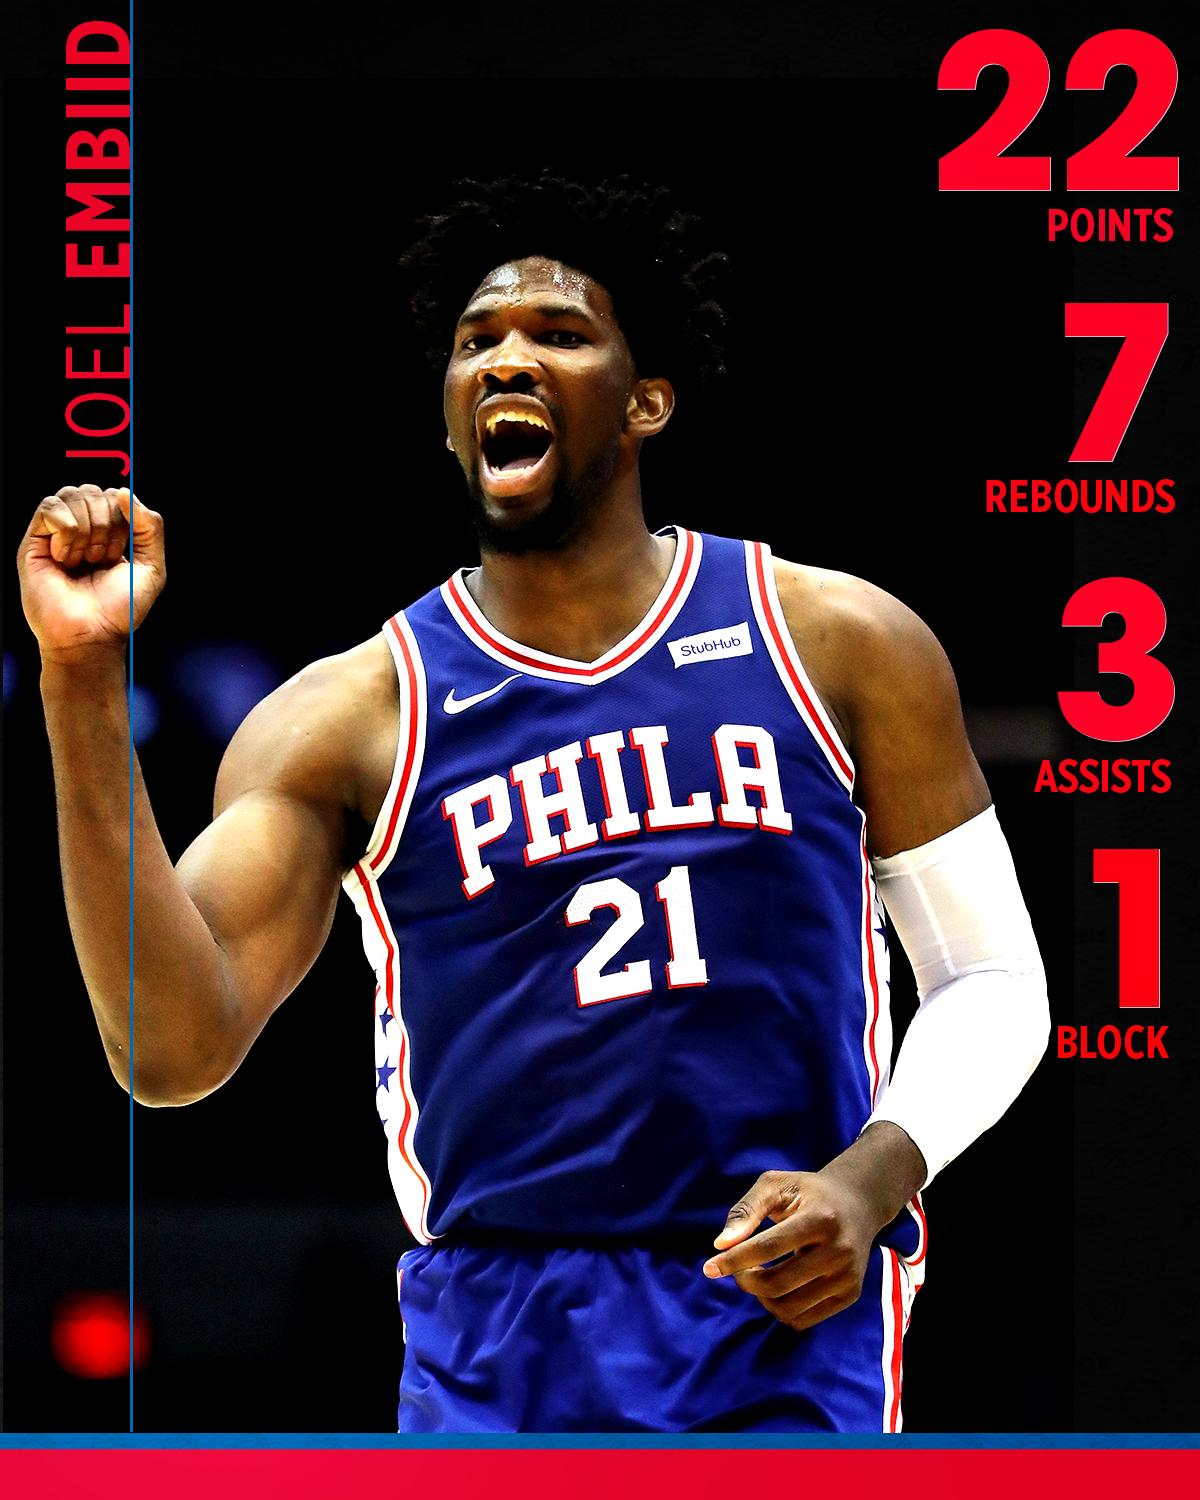 Joel Embiid played less than 15 minutes and did this ⬇️ https://t.co/4aykU3MU3M